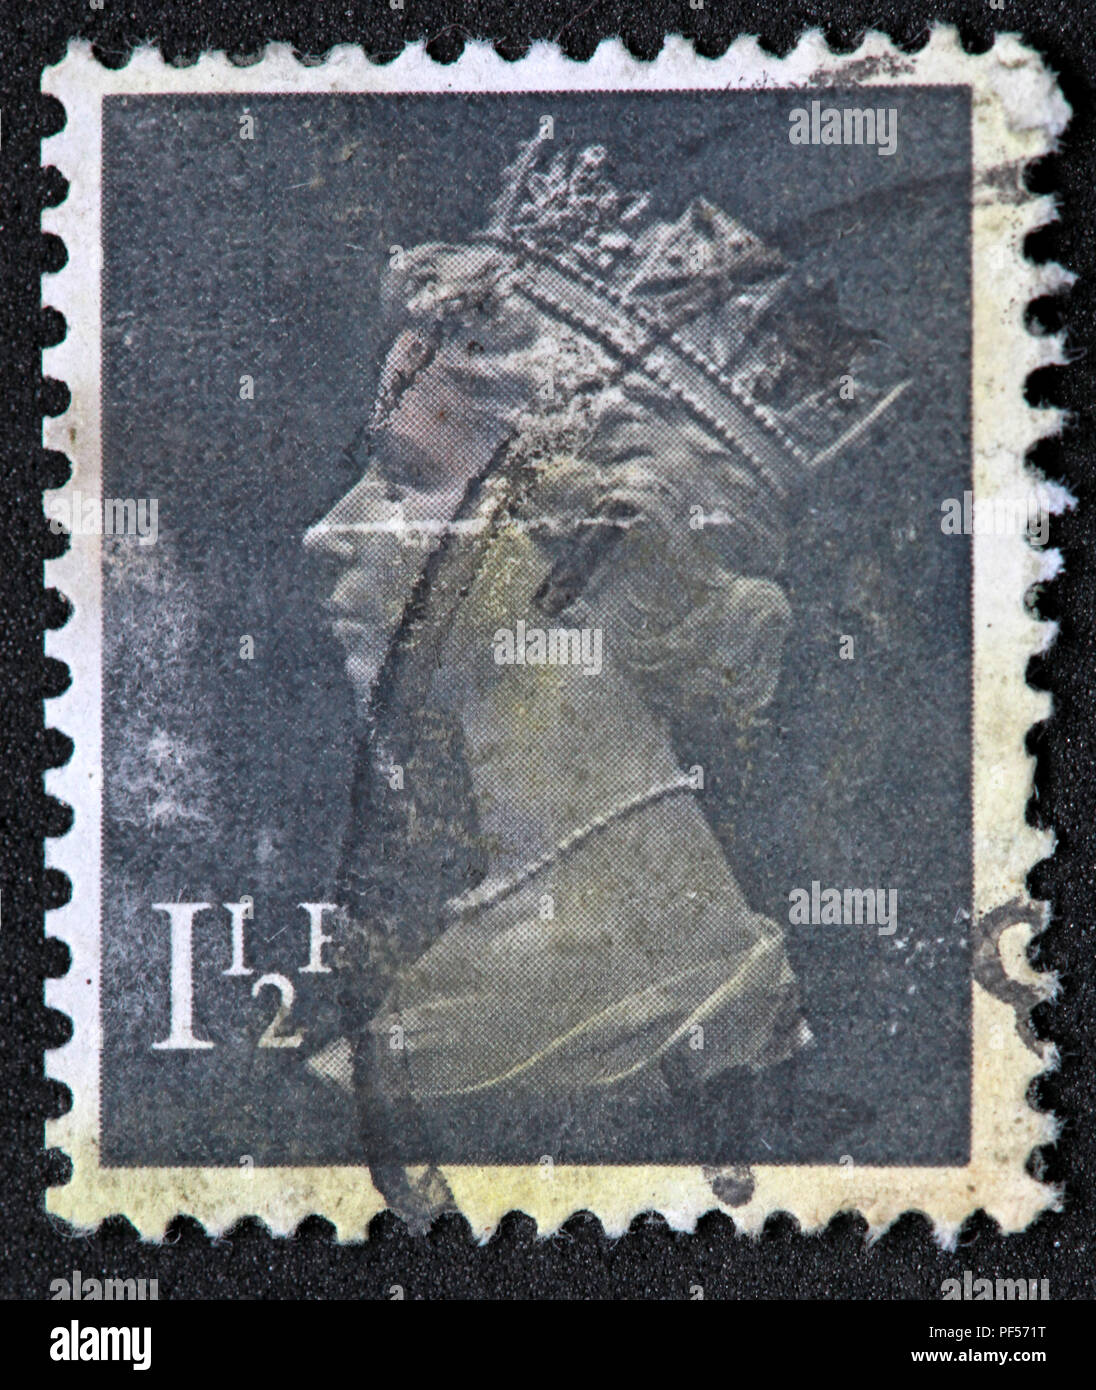 Used franked British UK stamp - 1.5p - Queen Elizabeth II - Stock Image